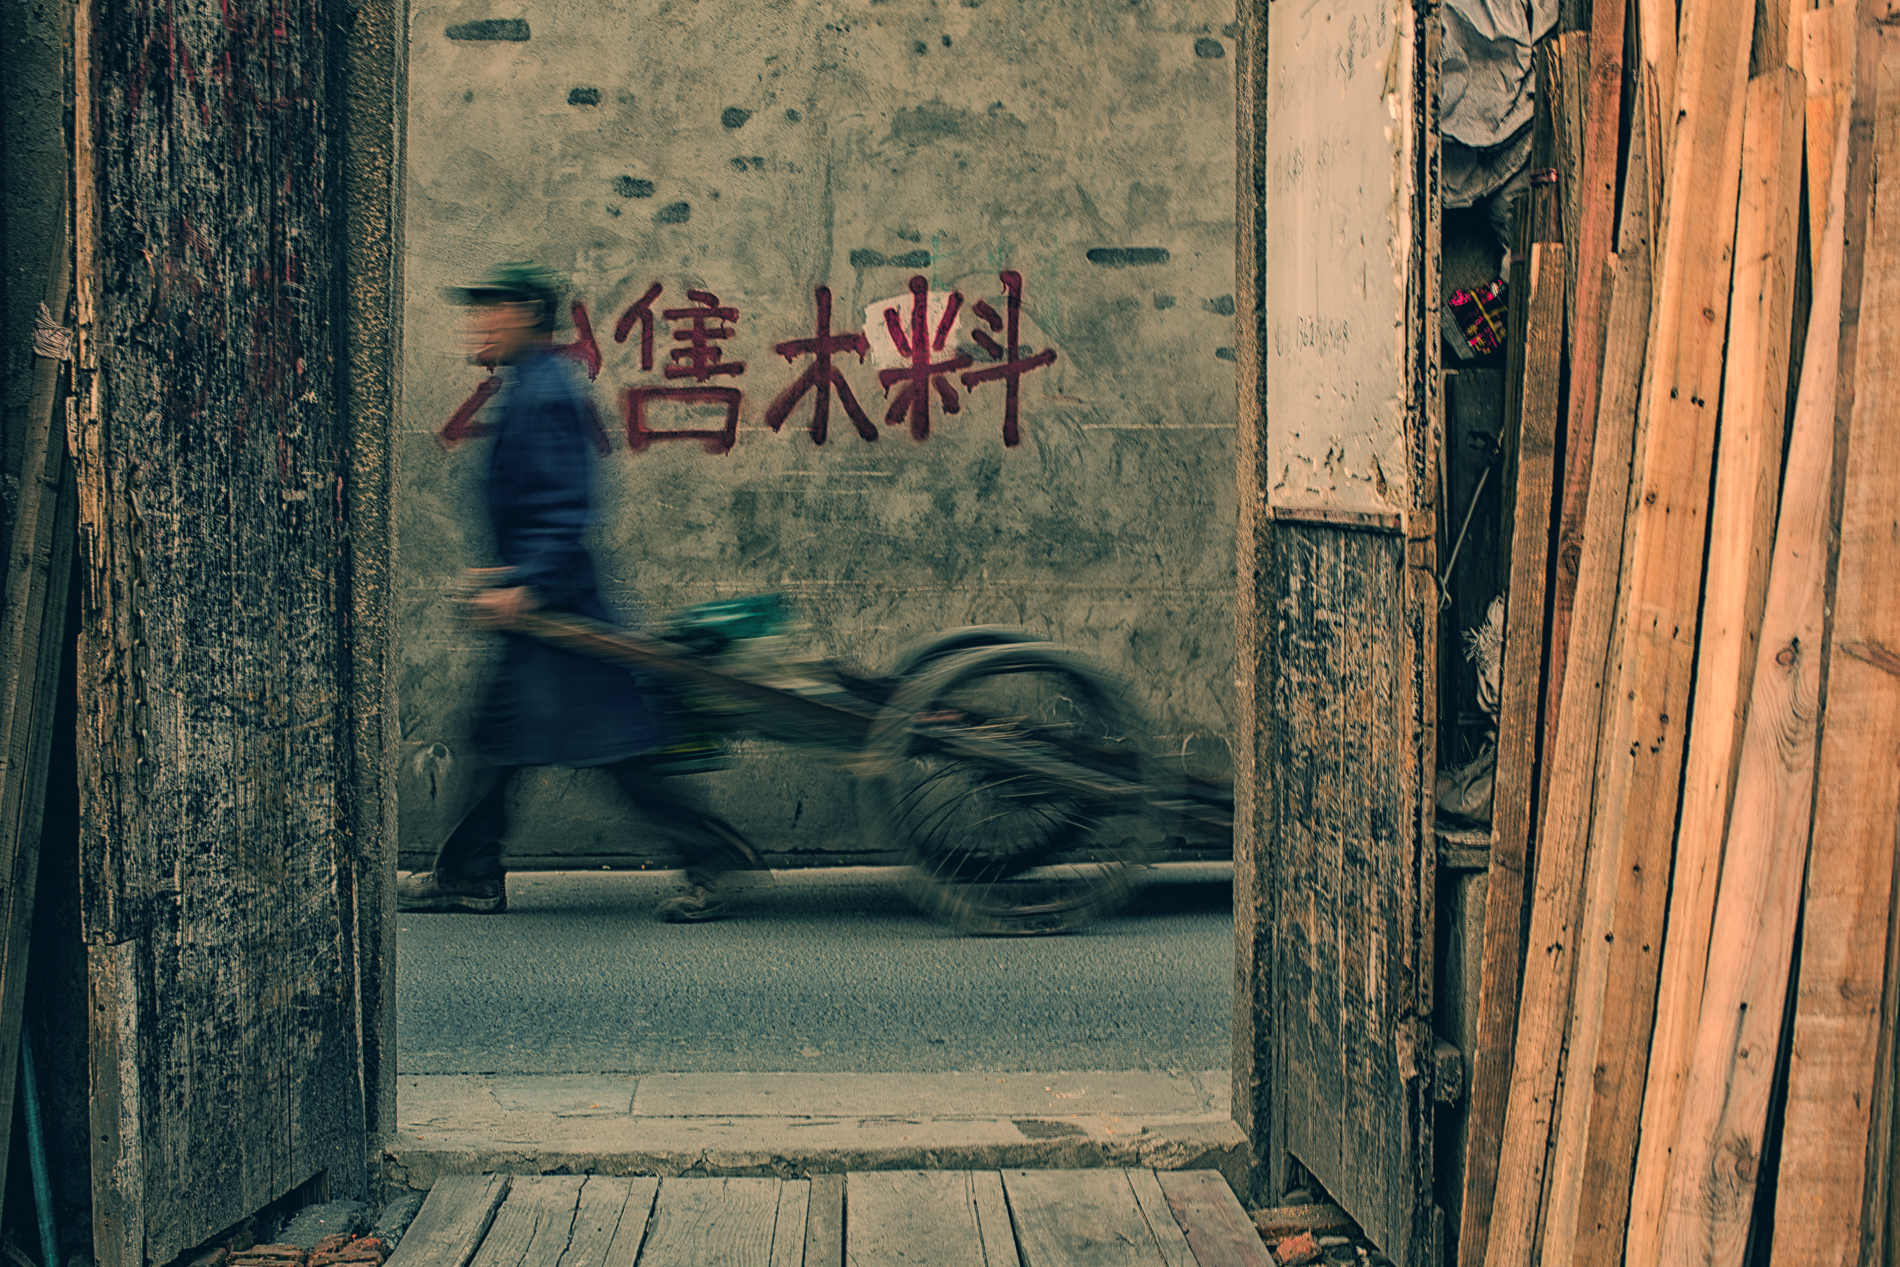 worker in a Shanghai old alley